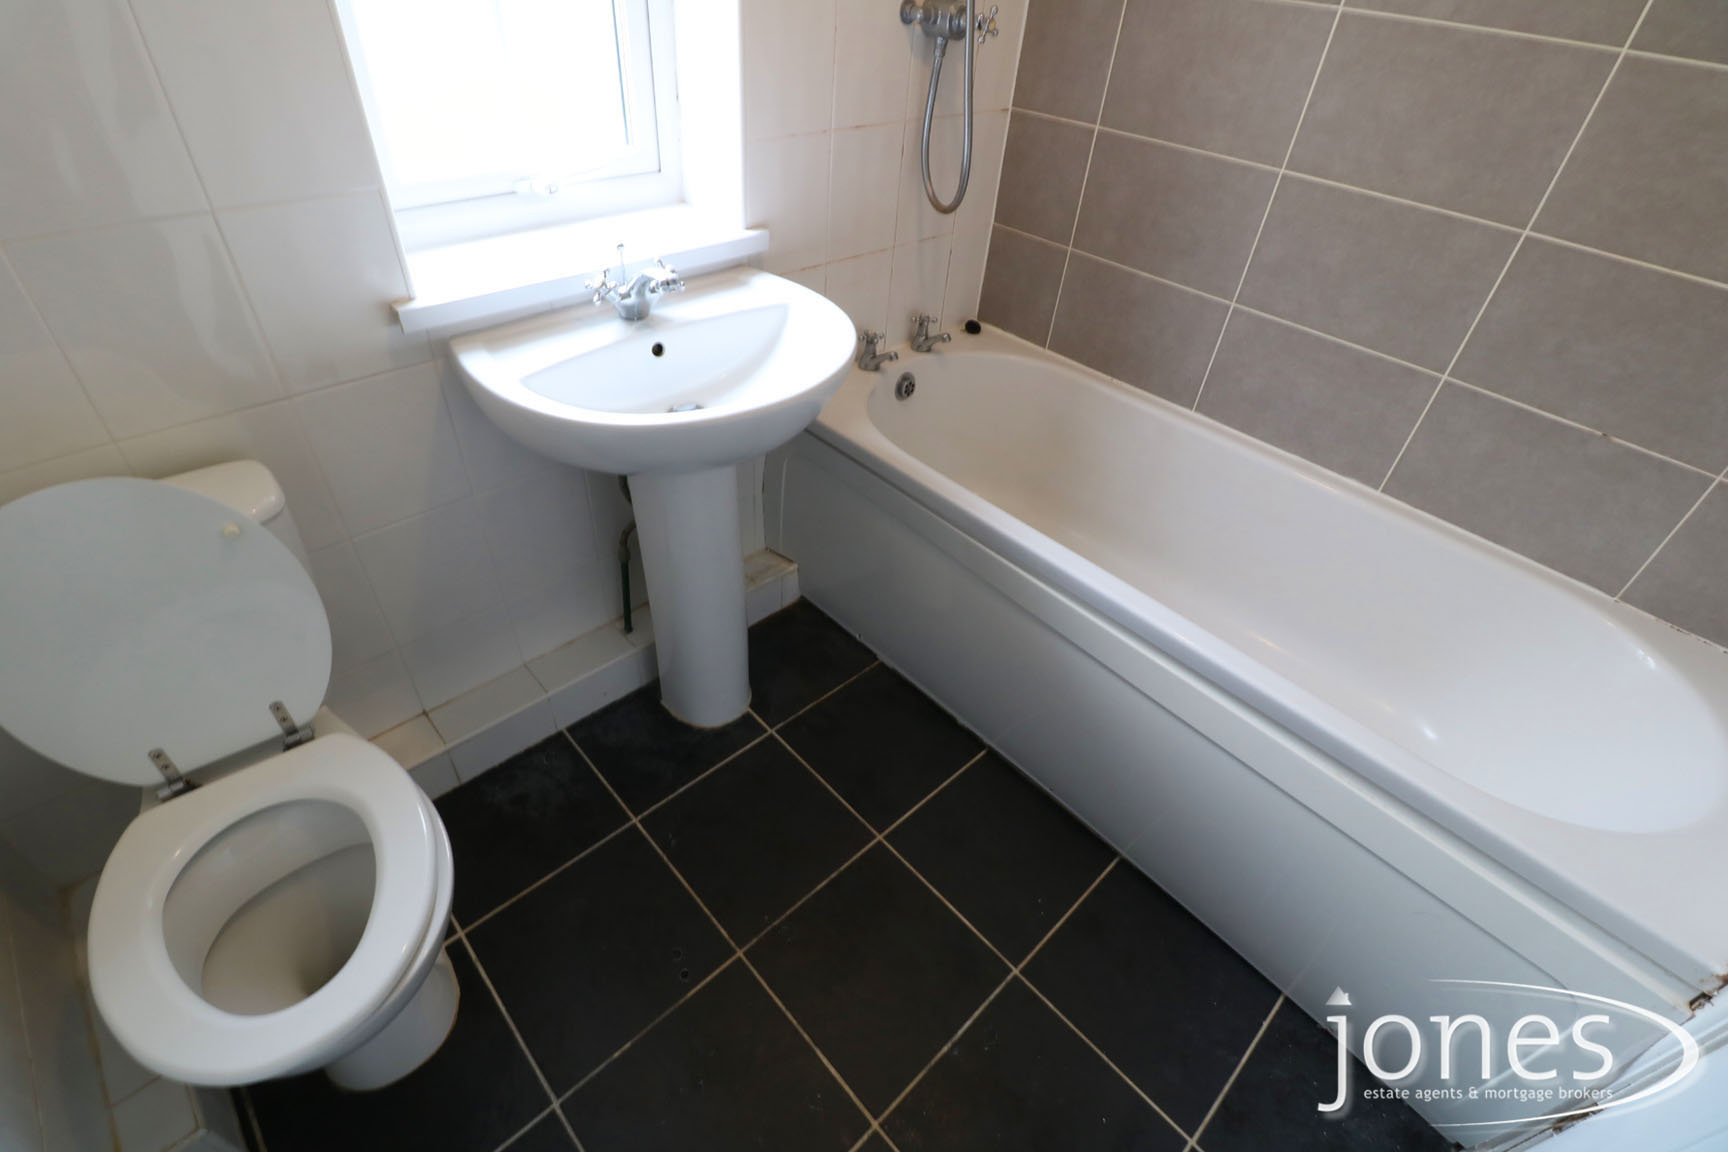 Home for Sale Let - Photo 09 Keats Road, Normanby, Middlesbrough, TS6 0RP